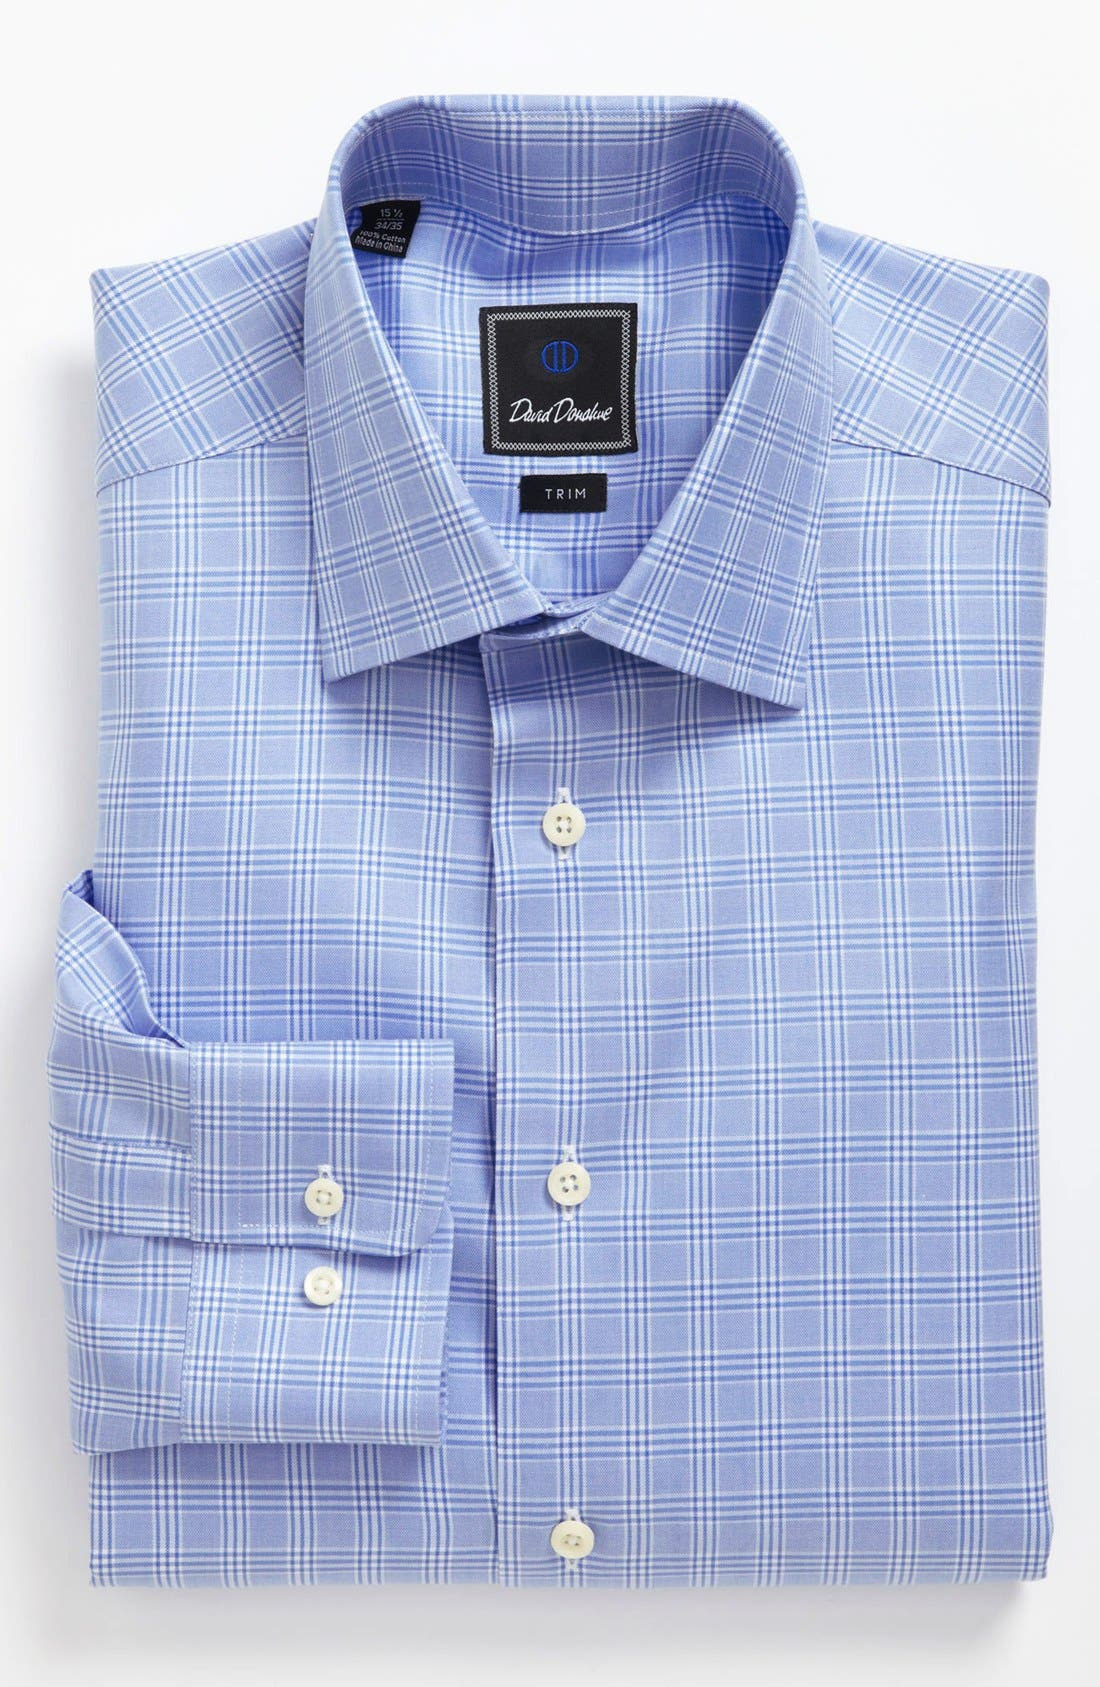 Alternate Image 1 Selected - David Donahue Trim Fit Dress Shirt